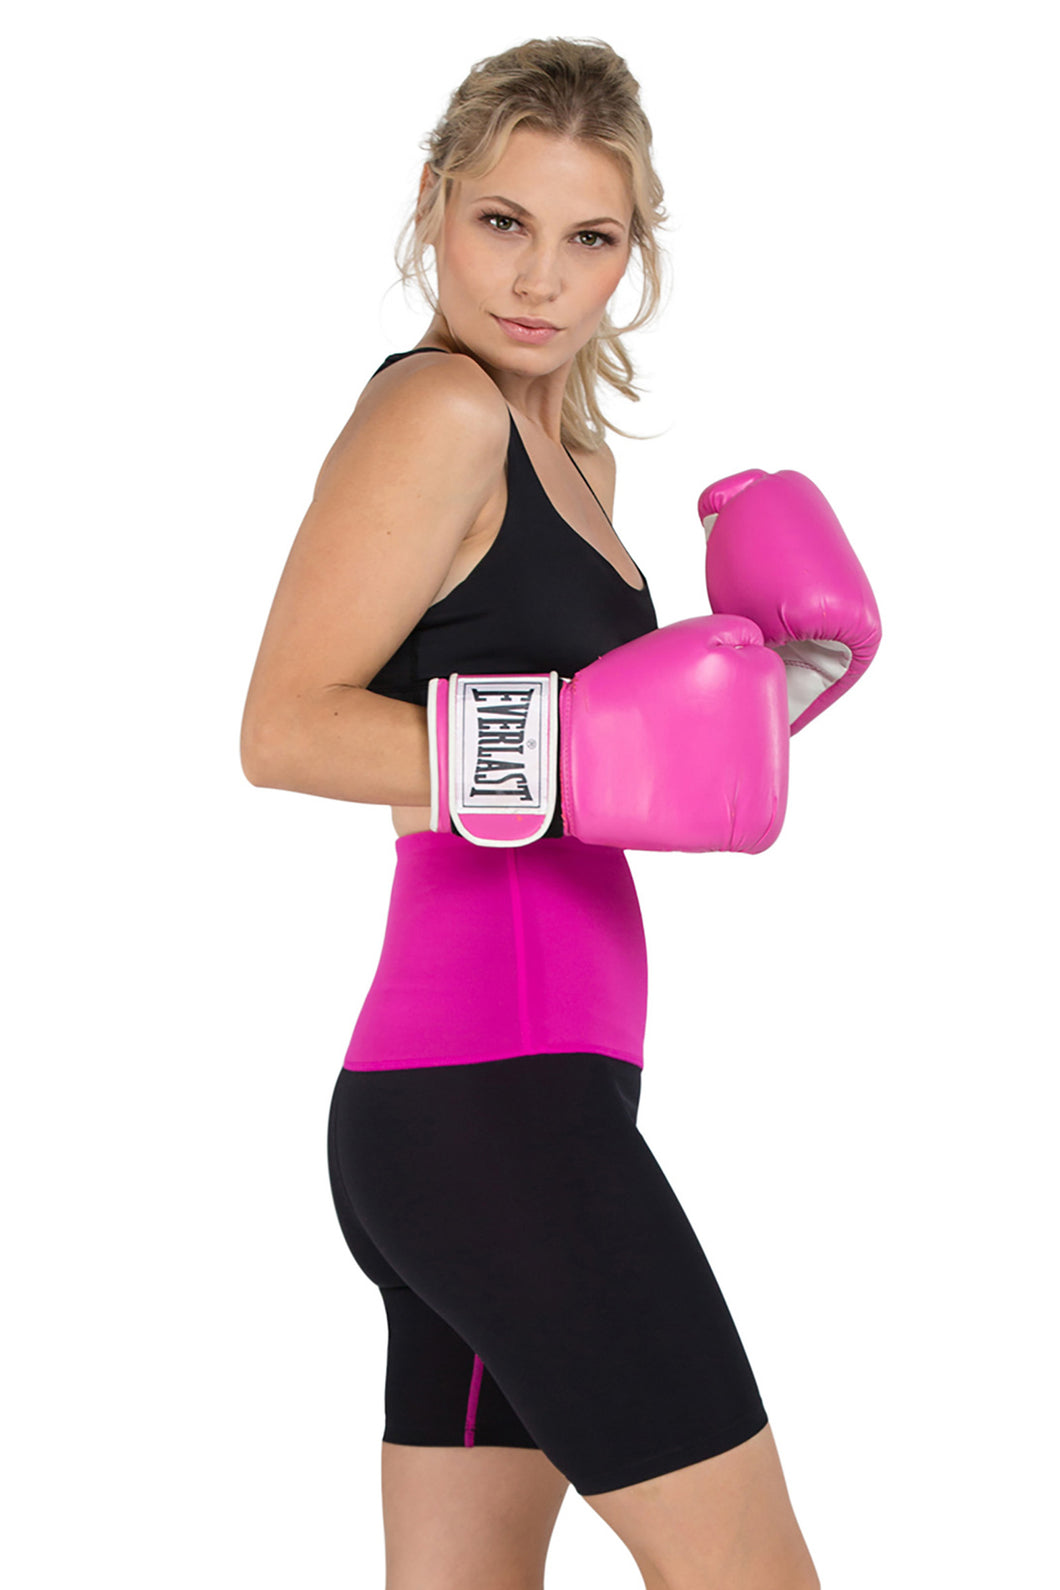 Mineral Infused High Waist Exercise Shorts - Black/Pink